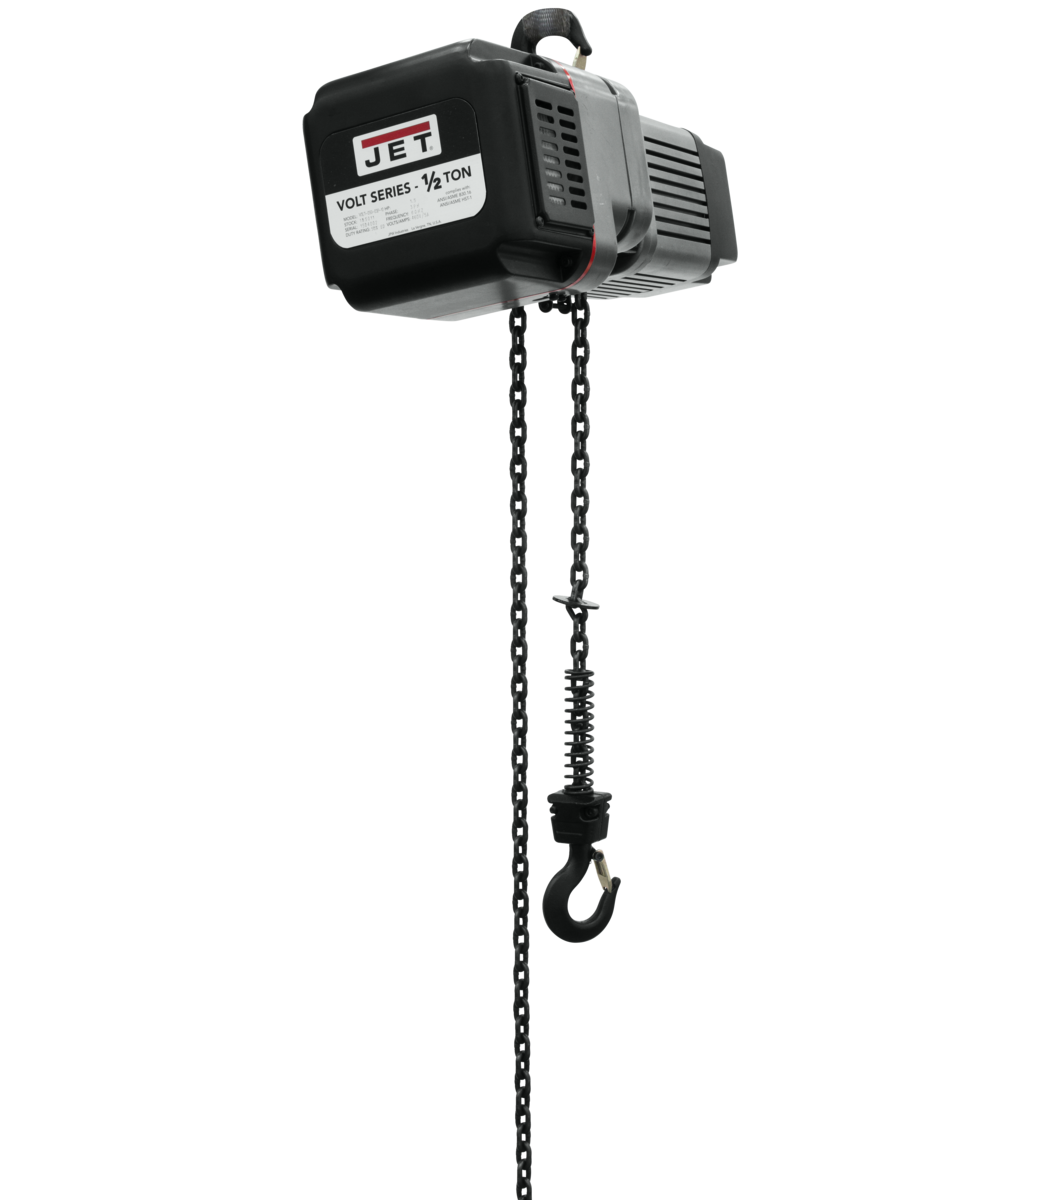 VOLT 1/2T VARIABLE-SPEED ELECTRIC HOIST 3PH 460V 15' LIFT